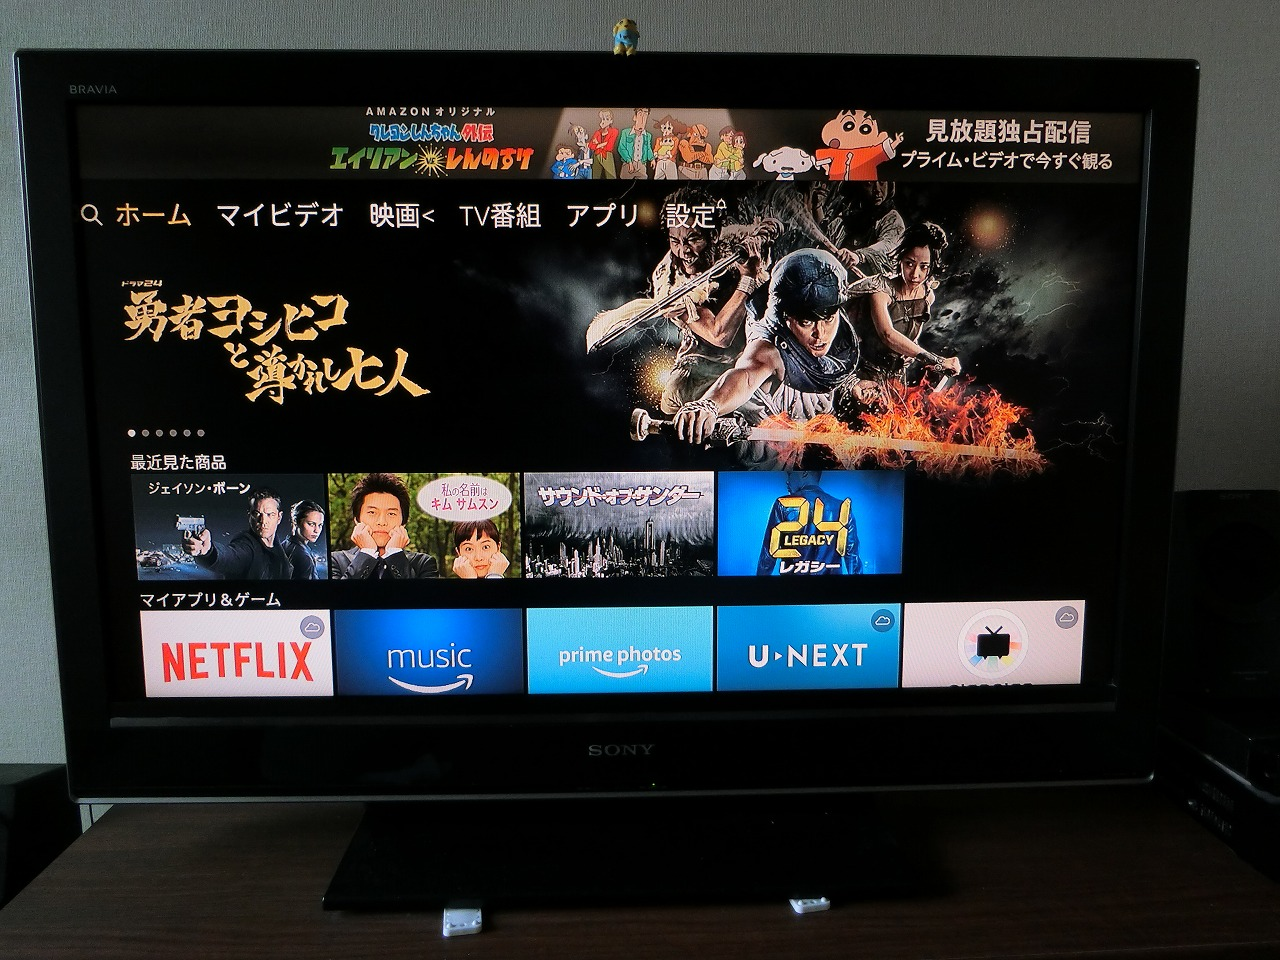 Fire_tv_stick_4s